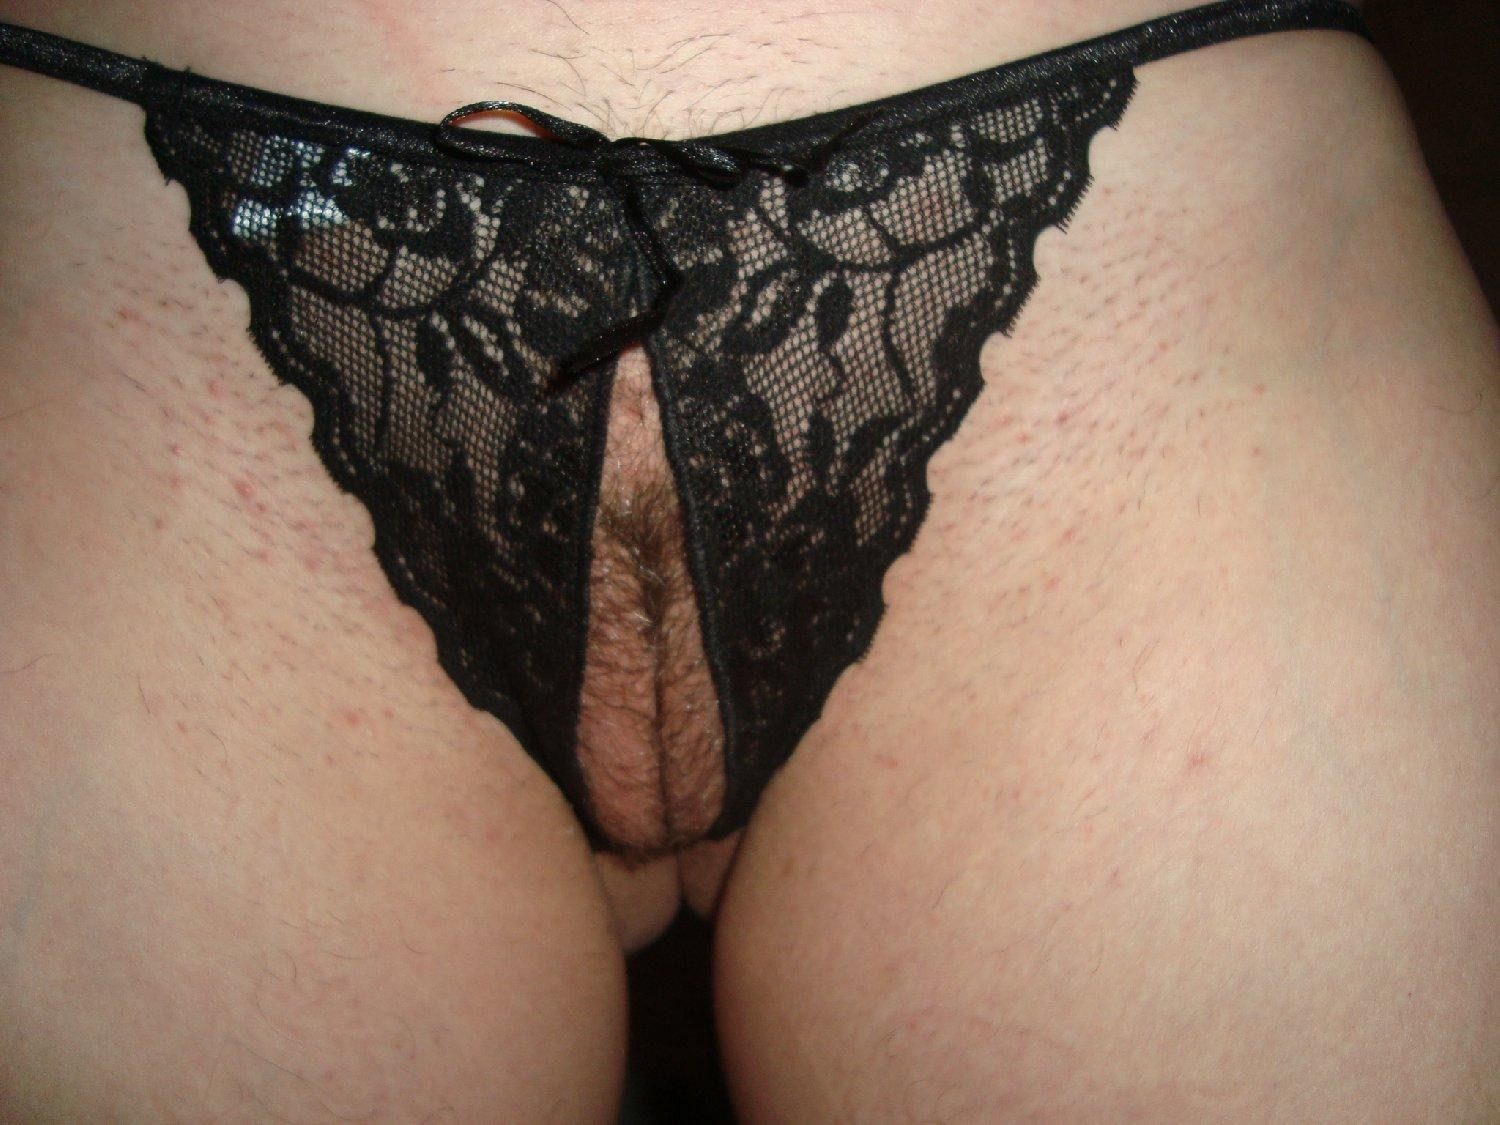 Panties with pubic hairs